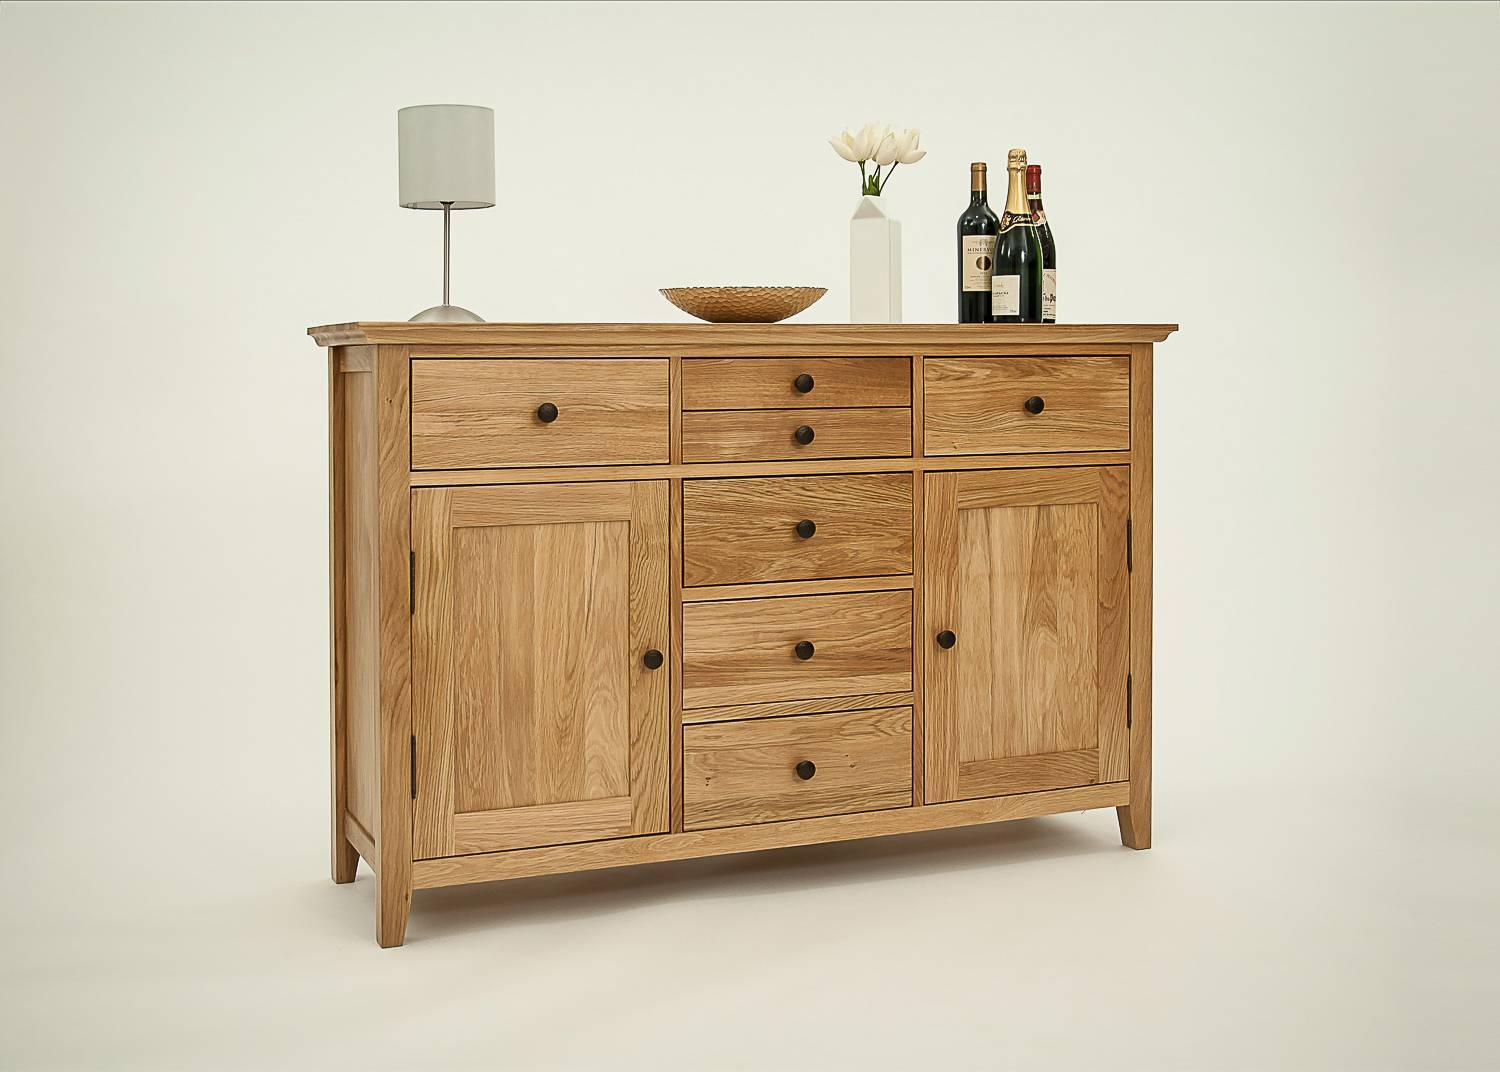 Ametis Hereford Rustic Oak Large Sideboard | Casamo – Love Your Home For Most Current Rustic Oak Large Sideboards (#1 of 15)